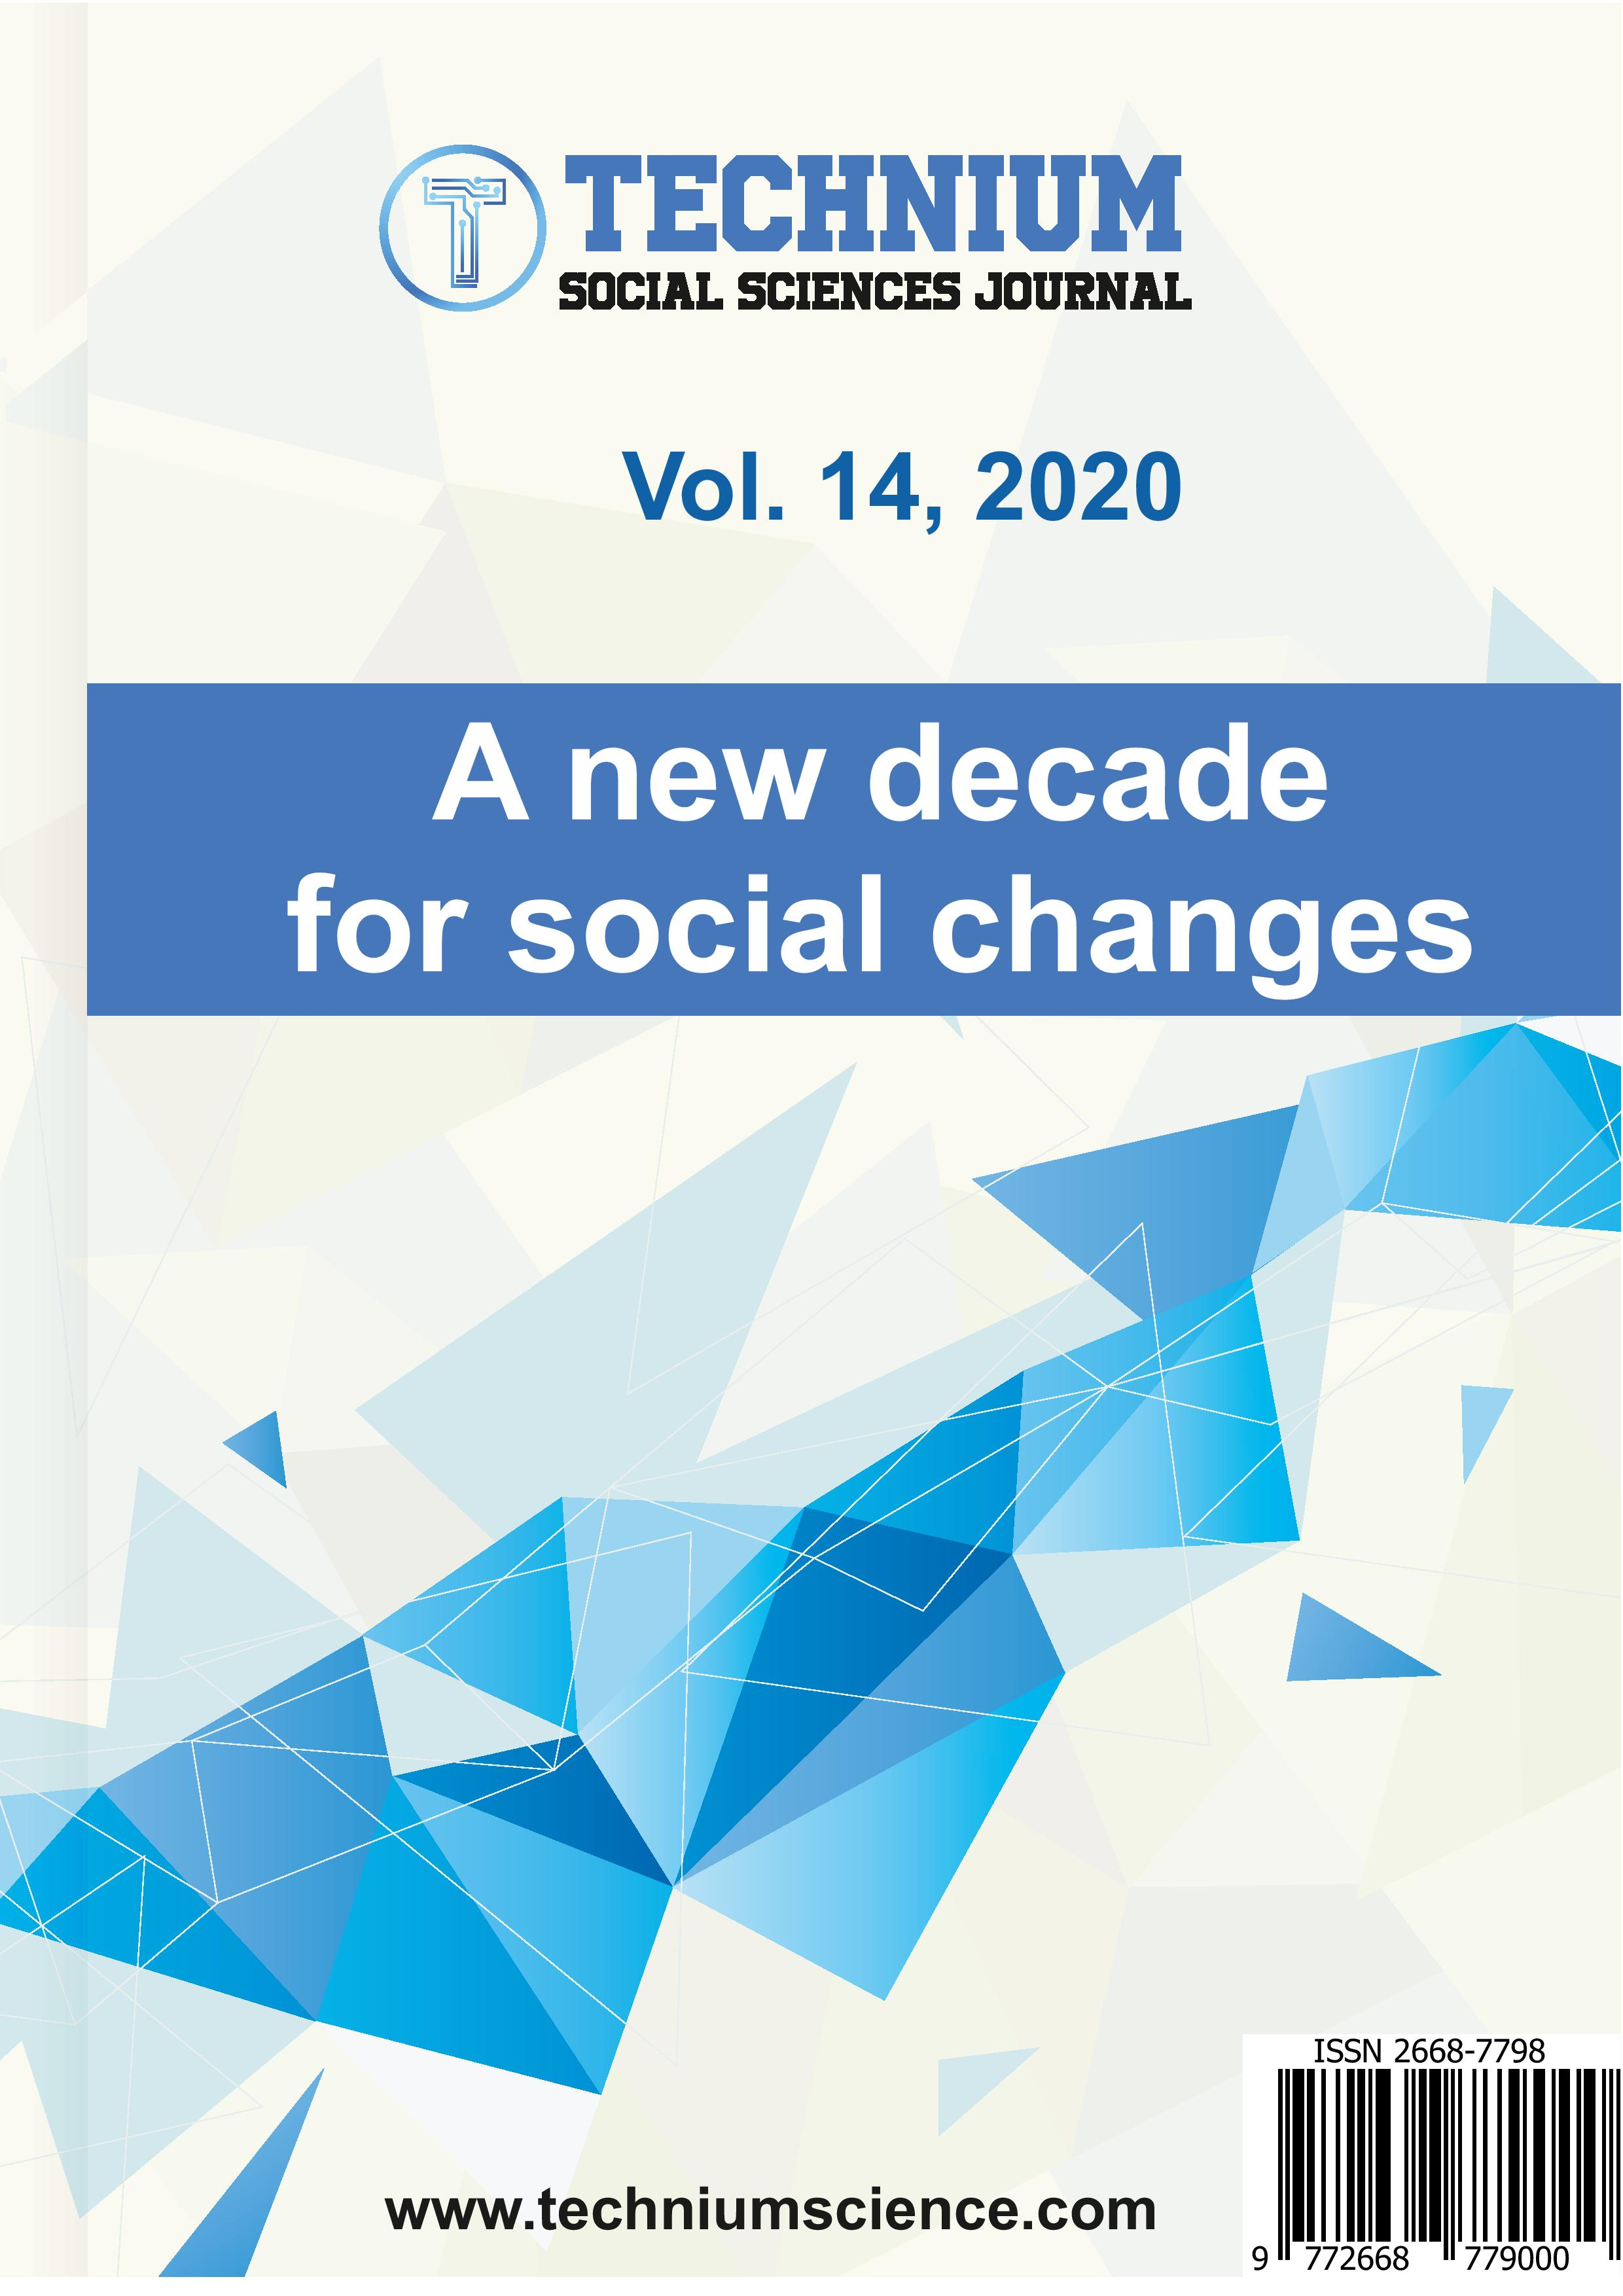 View Vol. 14 (2020): A new decade for social changes